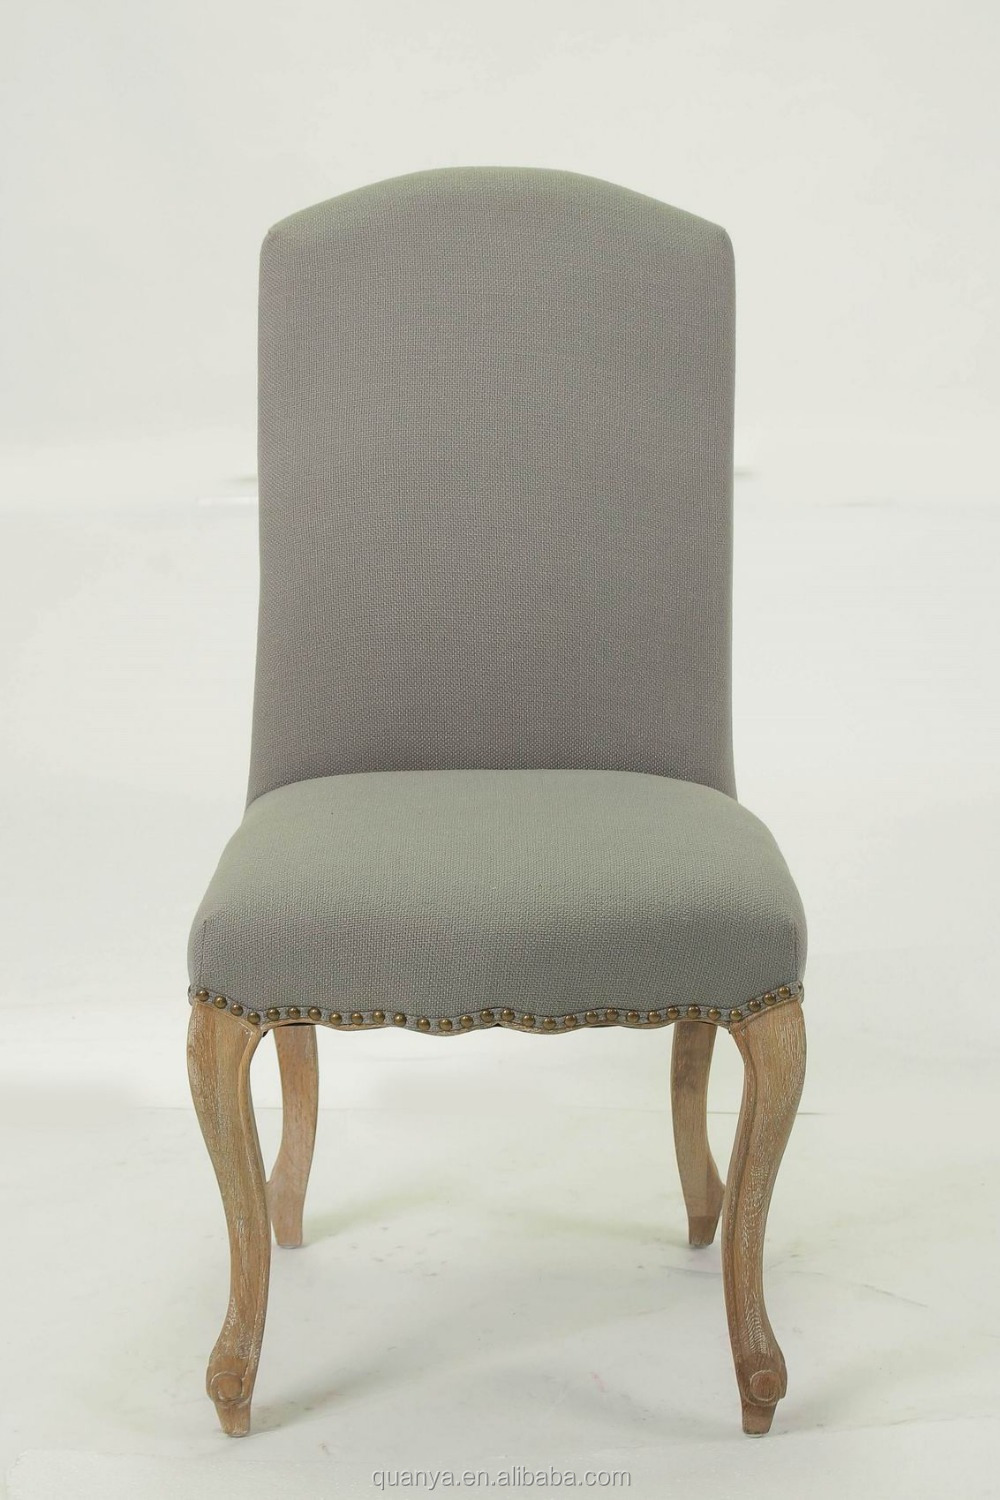 Upholstered Durable High Back Fabric Wooden Dining Chair